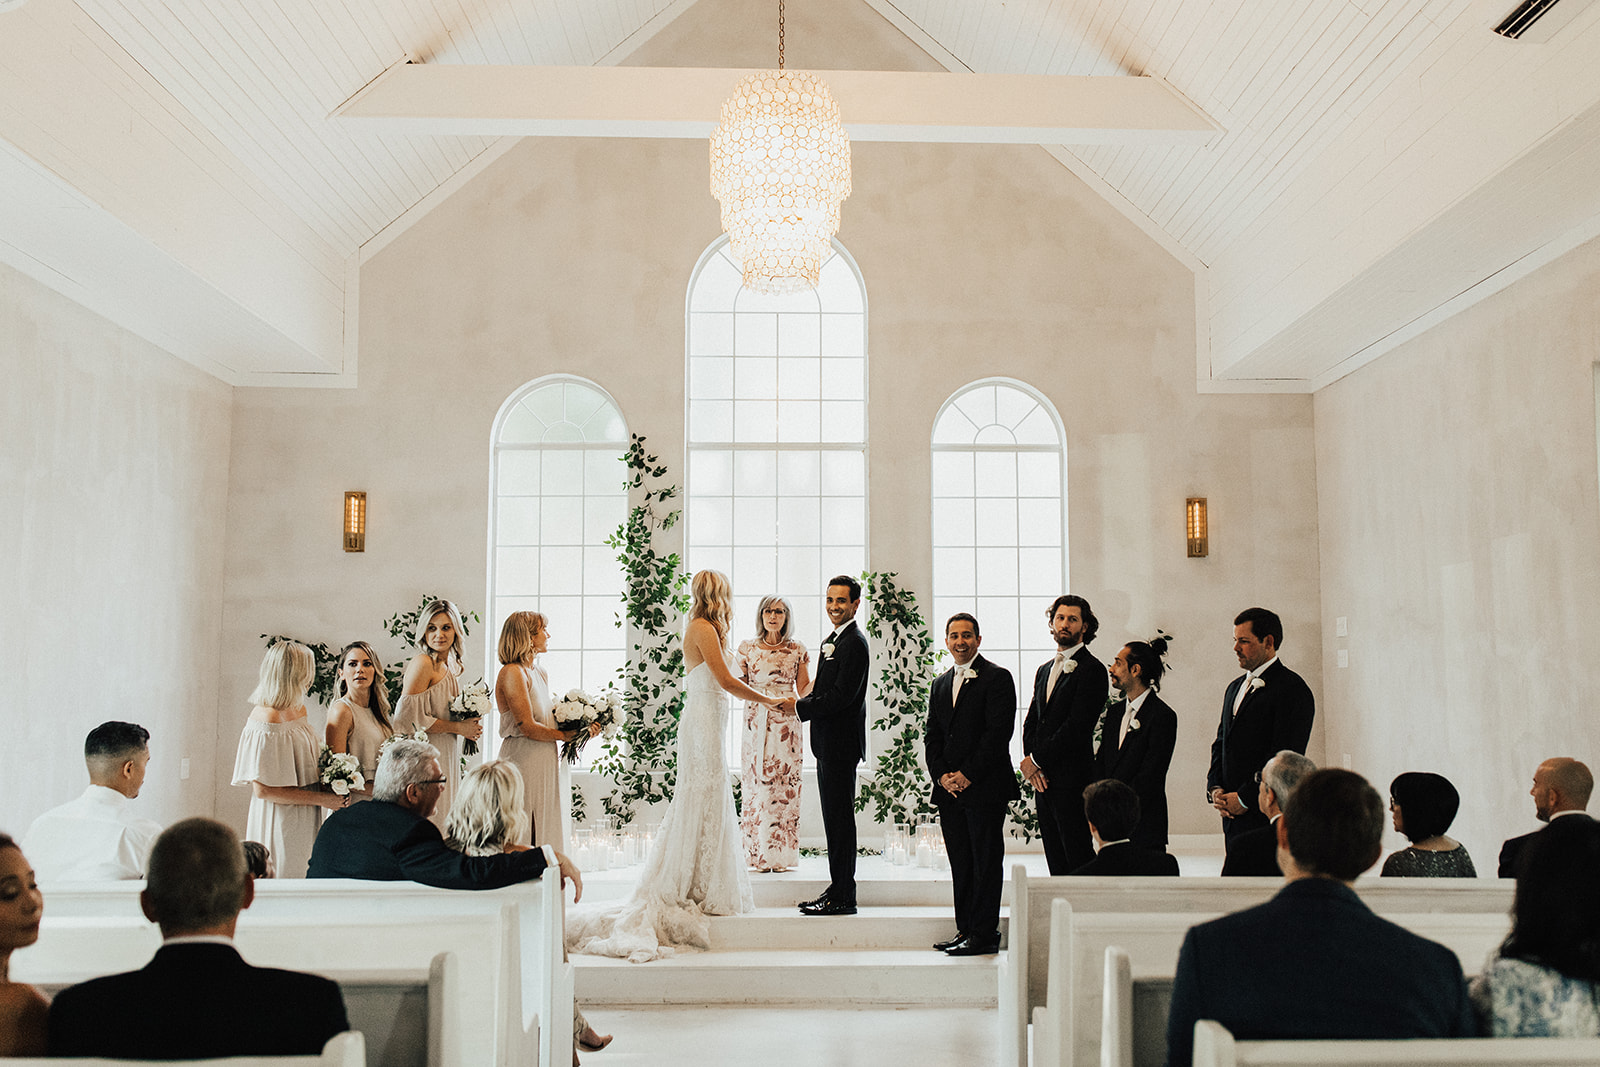 DFW Wedding Ceremony Inspiration